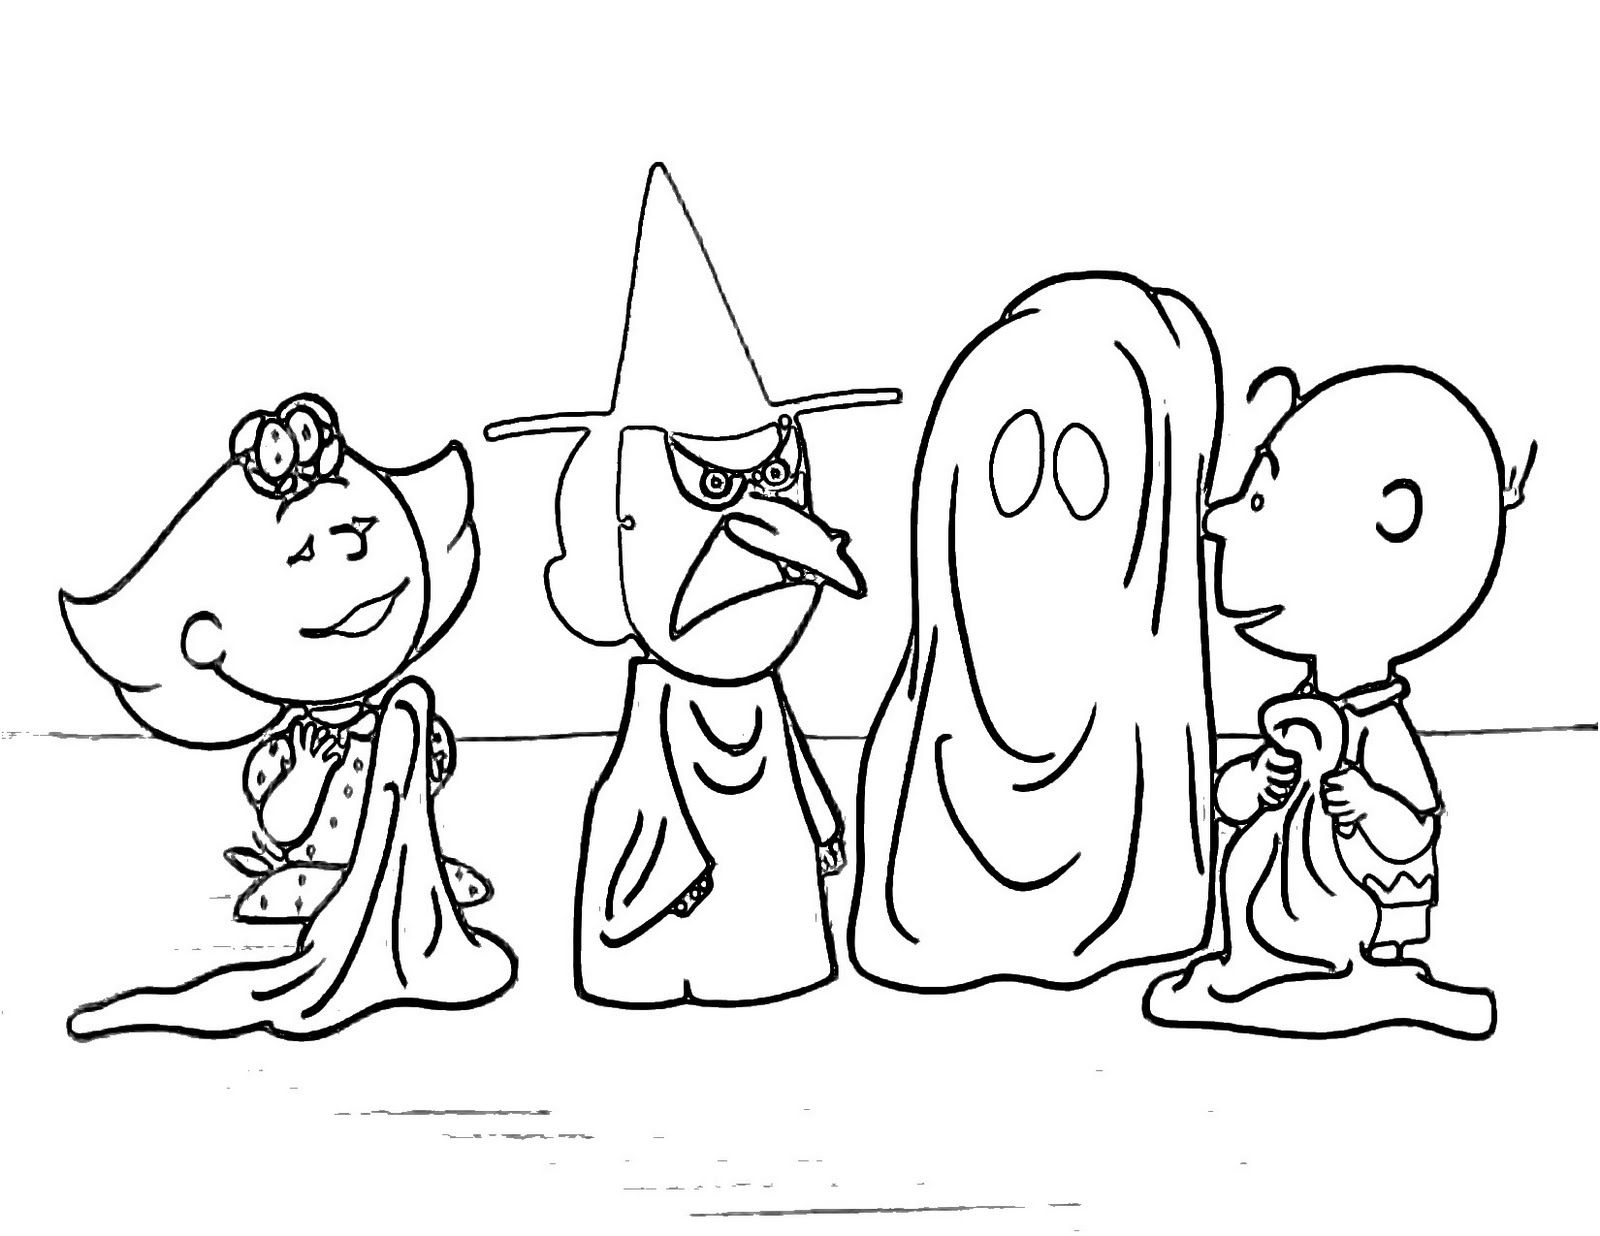 Charlie Brown Halloween Coloring Pages Snoopy Coloring Pages Halloween Coloring Sheets Halloween Coloring Pages